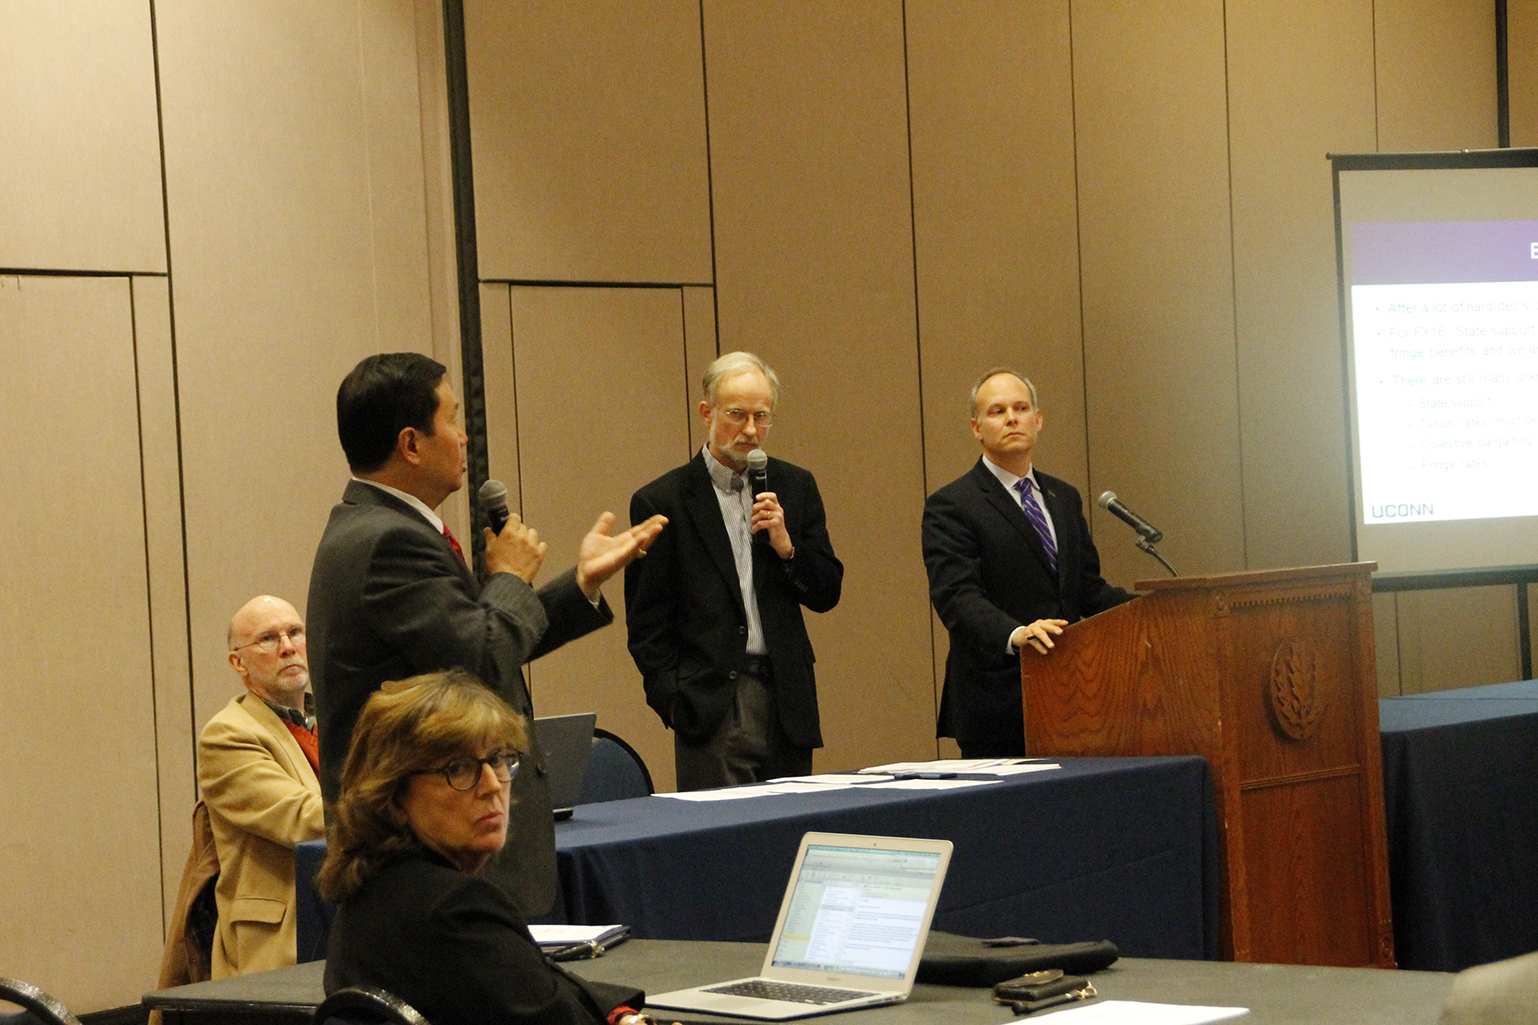 UConn Provost Mun Choi (left) speaks during the University Senate meeting in Storrs, Connecticut on Monday, Nov. 2, 2015.UConn's current deficit of $40 million will count for a 16 to 17 percent increase of tuition, Choi said at the meeting. (Marissa Aldieri/The Daily Campus)